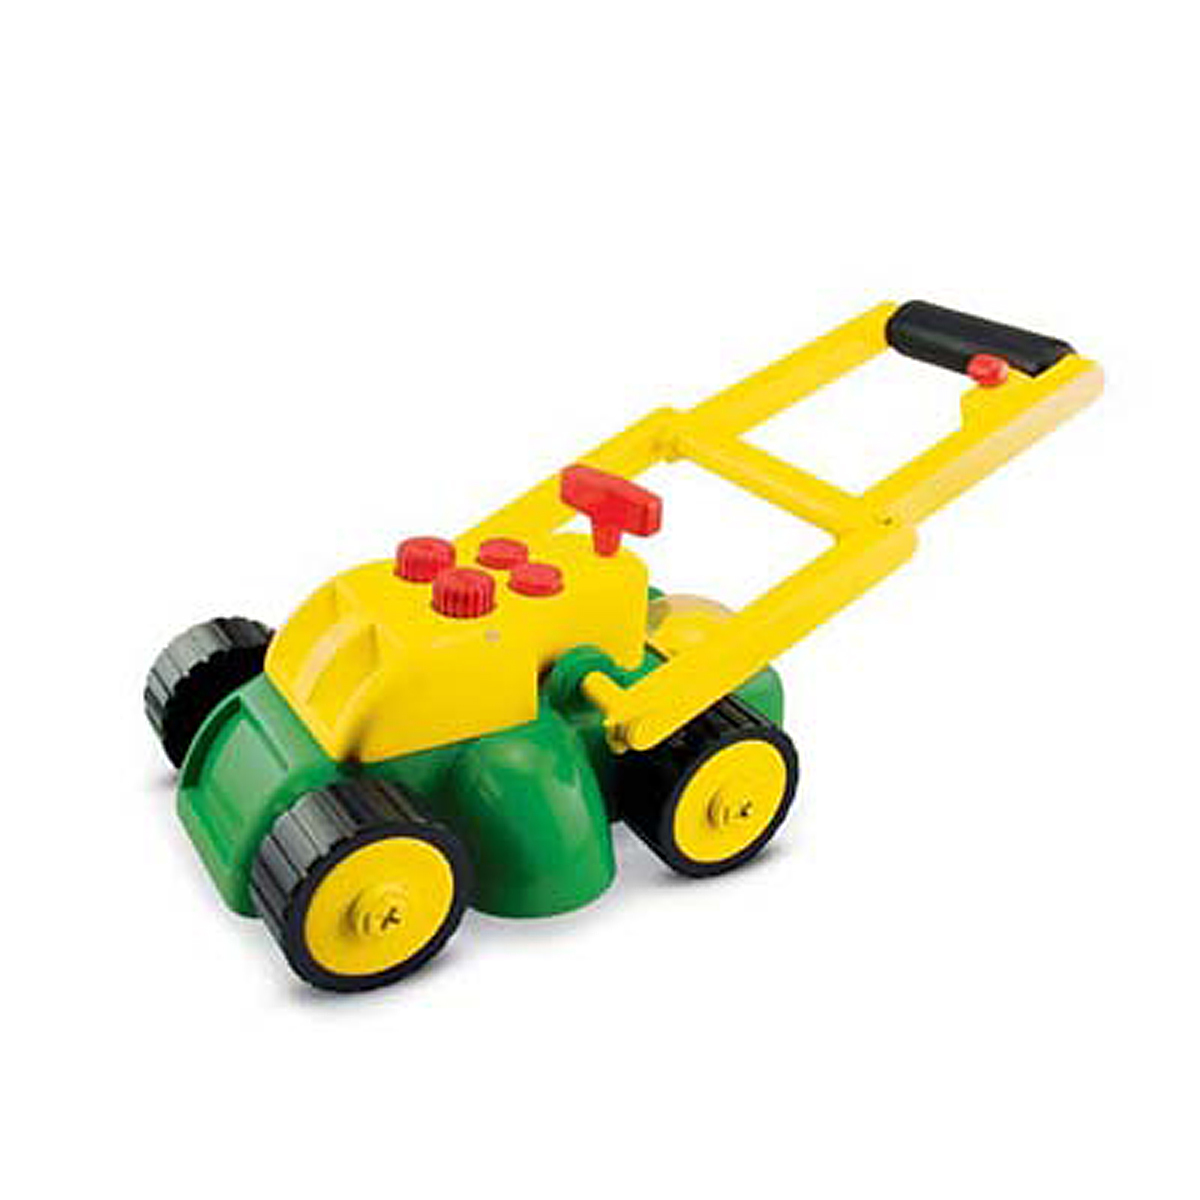 Electronic Lawn Mower Play Vehicles Toy Vehicles Toys John Deere Products Johndeerestore